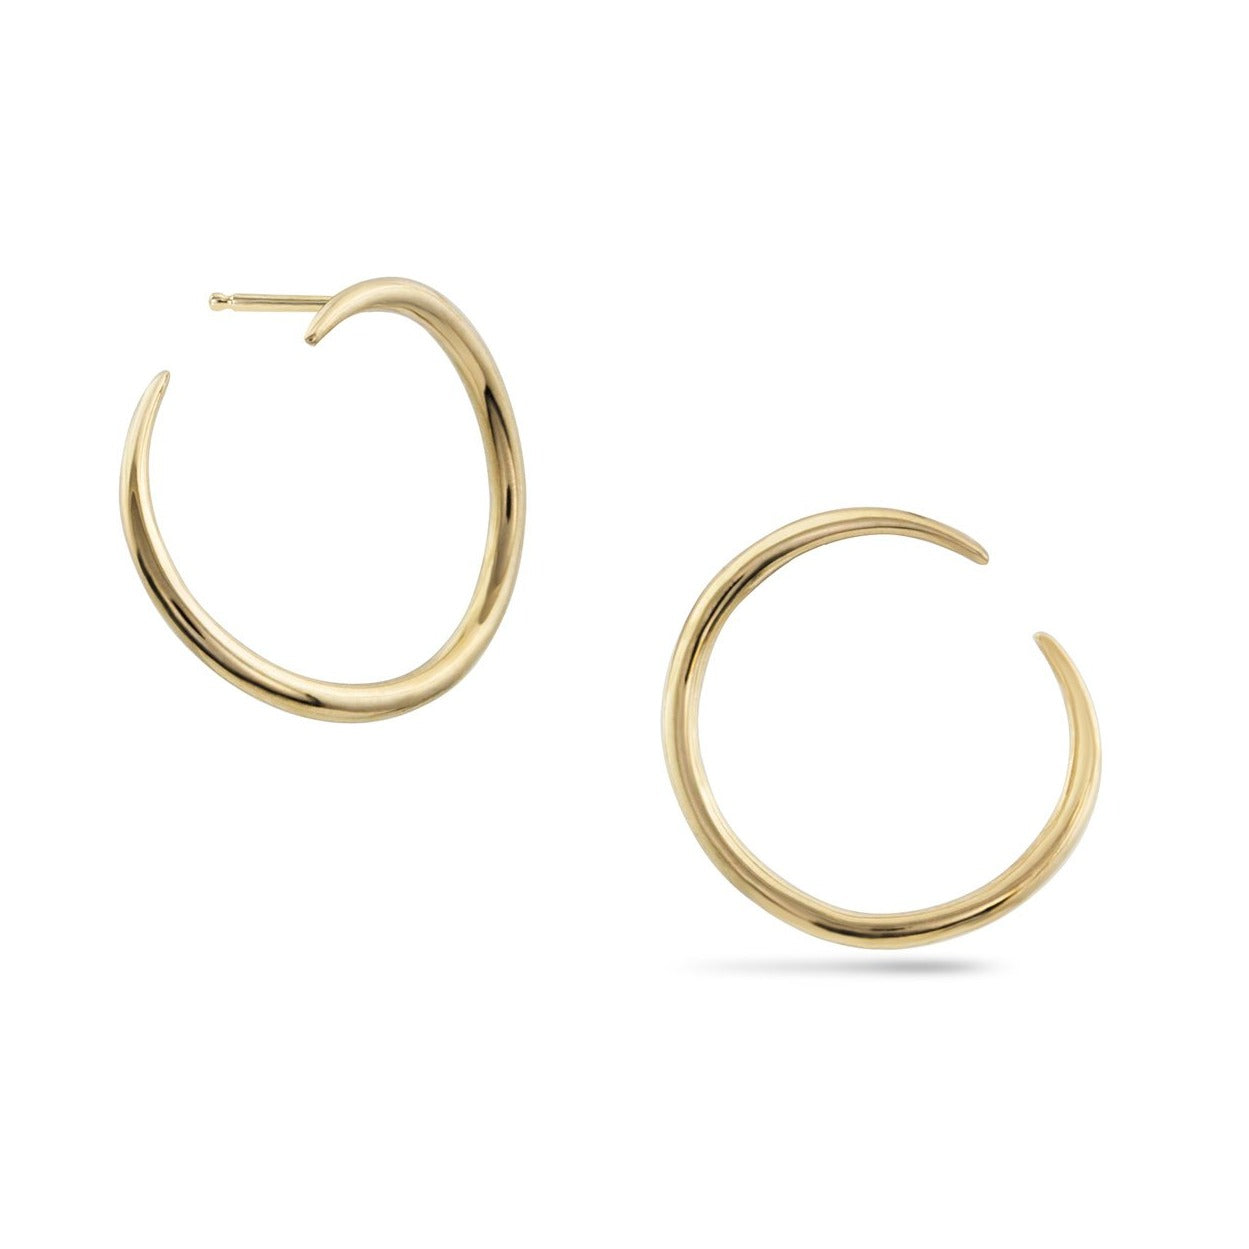 Solid 14k gold modern hoop earrings that wrap around earlobe.